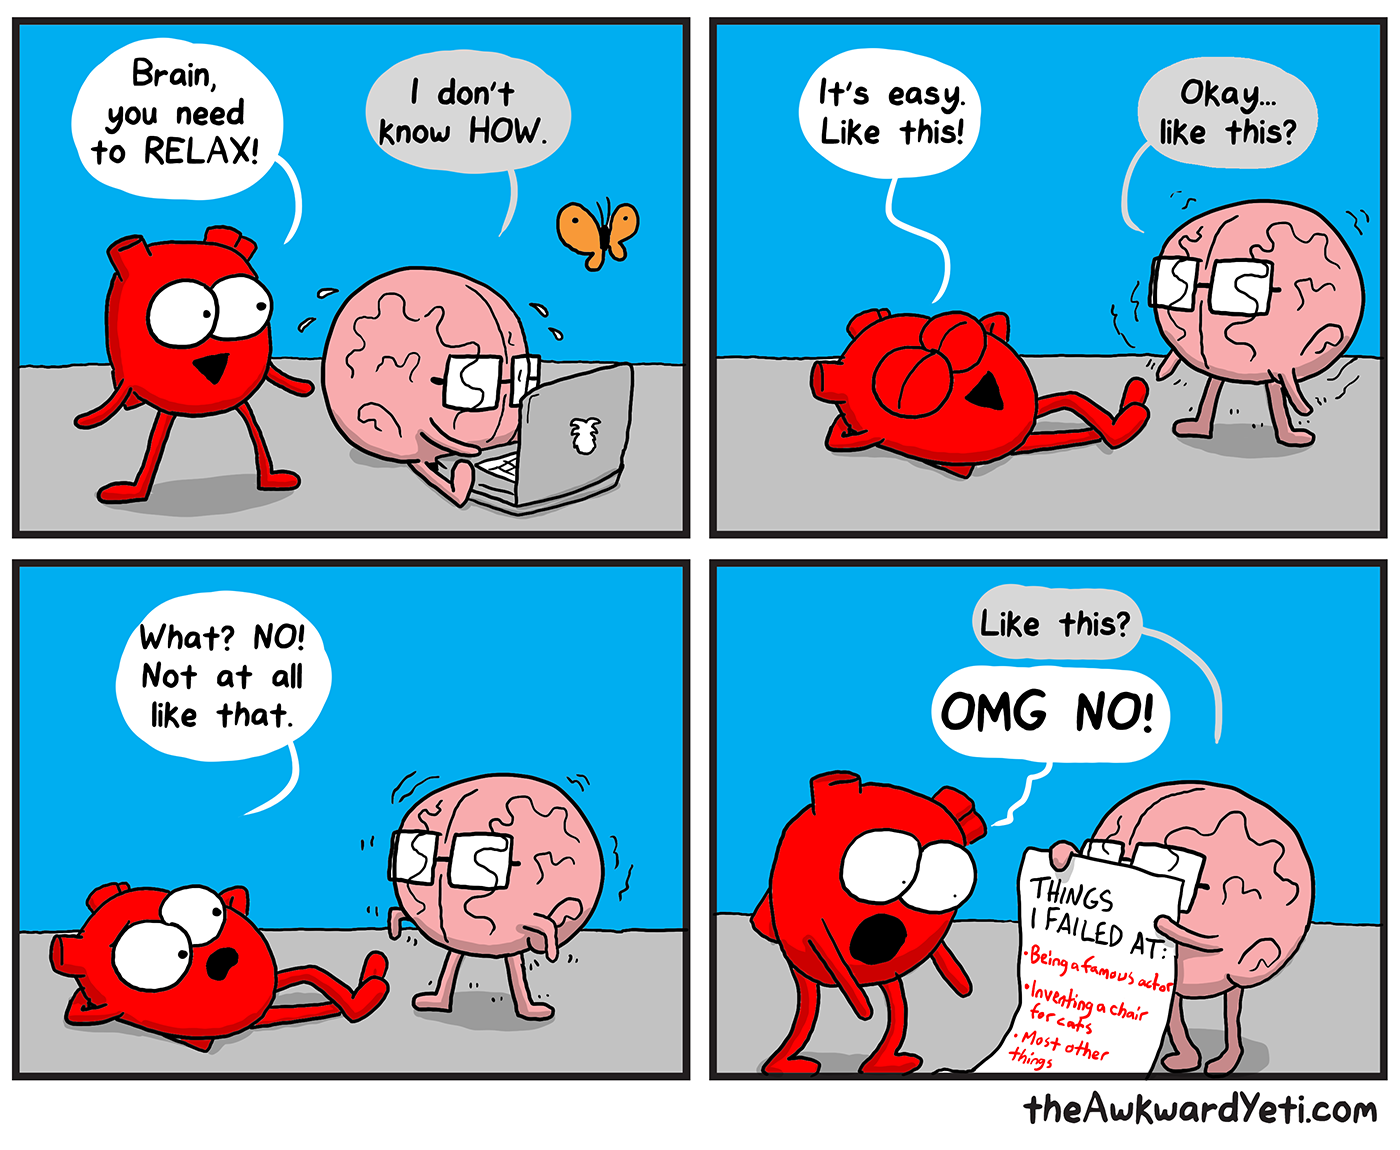 Brain tries to relax | Awkward yeti, Heart and brain comic, Funny comics